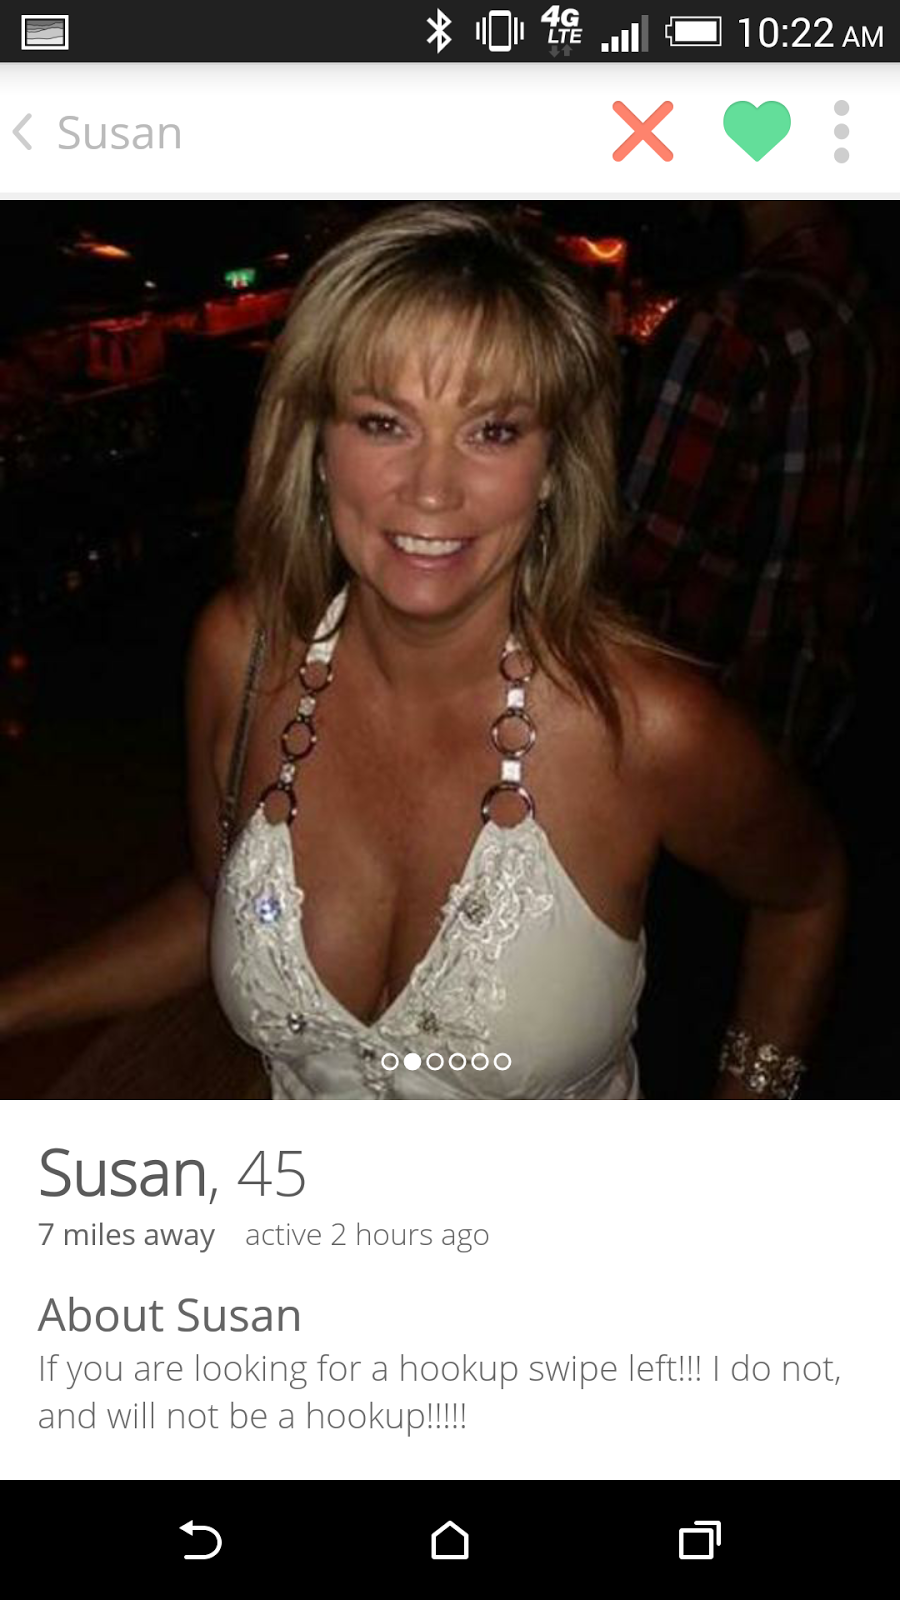 cougar tinder match